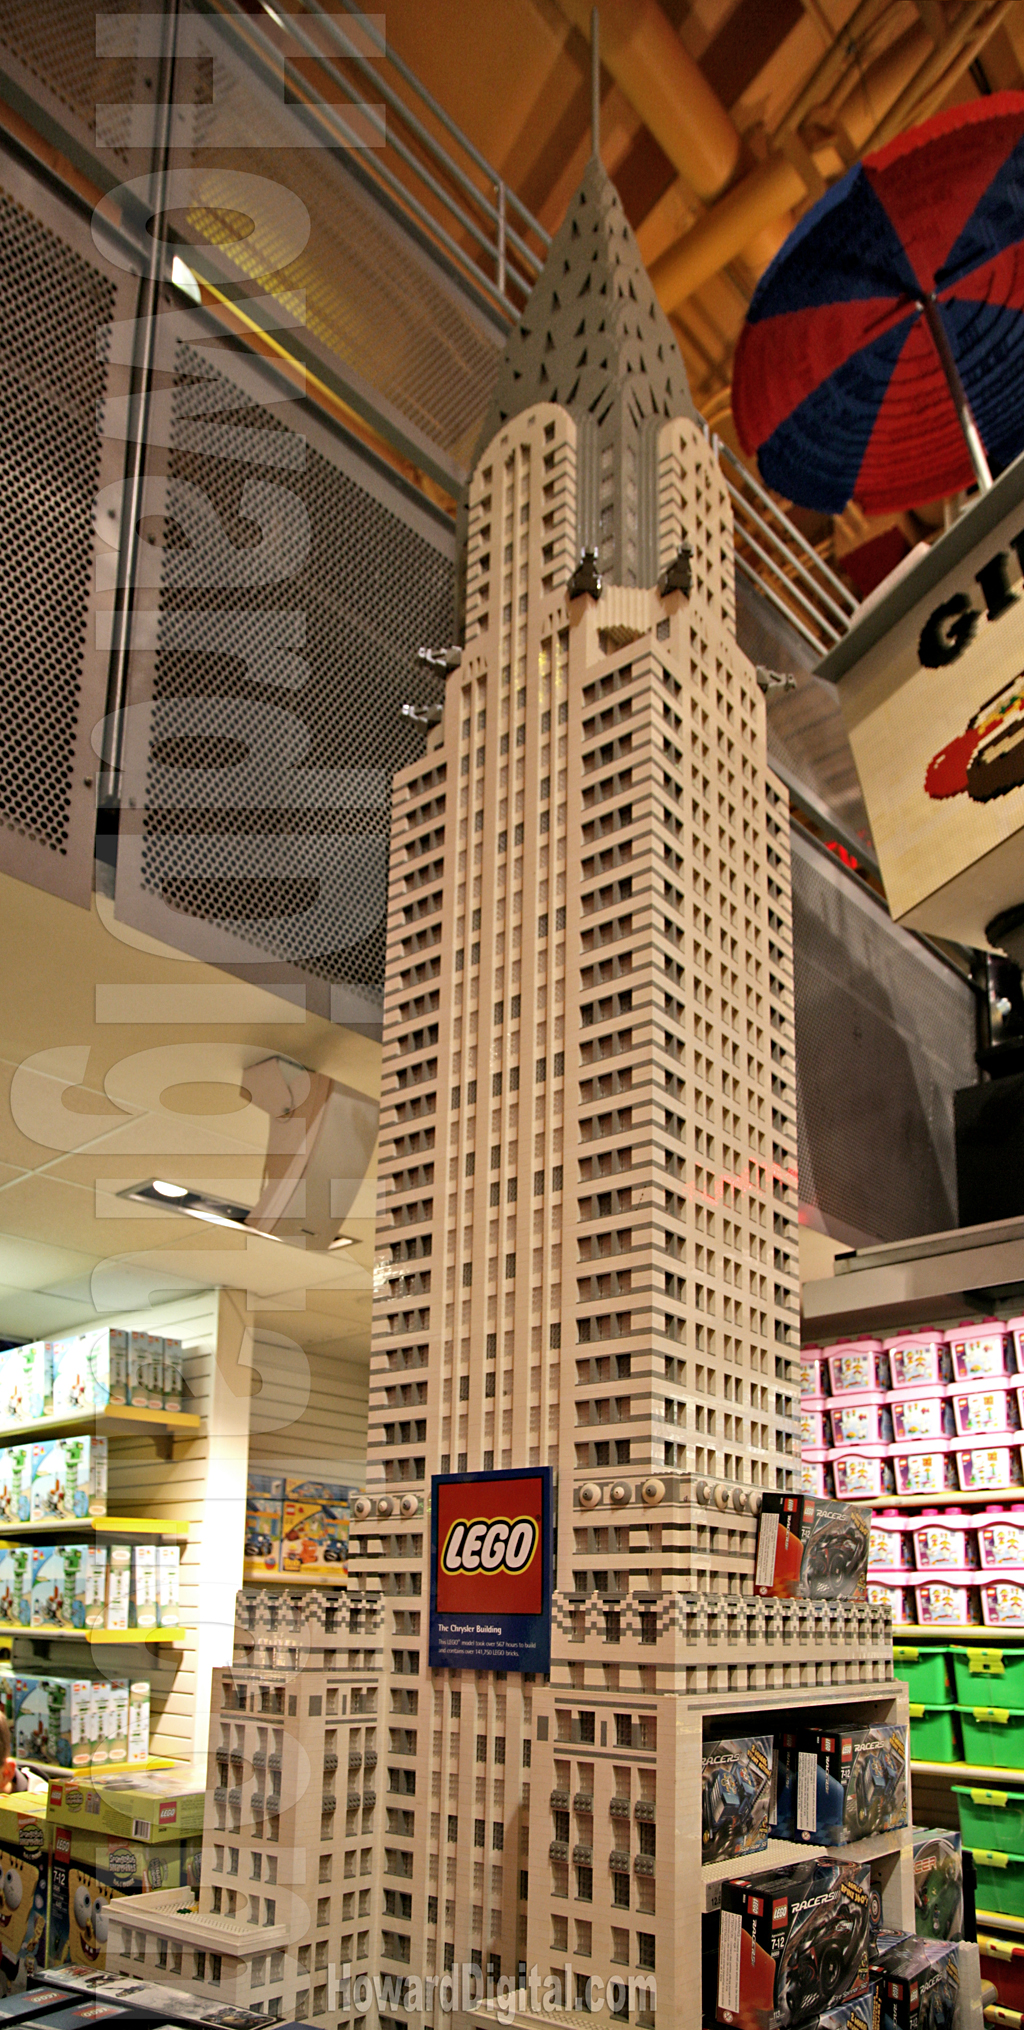 Chrysler Lego Building   Legos Store Photography   Howard Digital Chrysler Lego Building